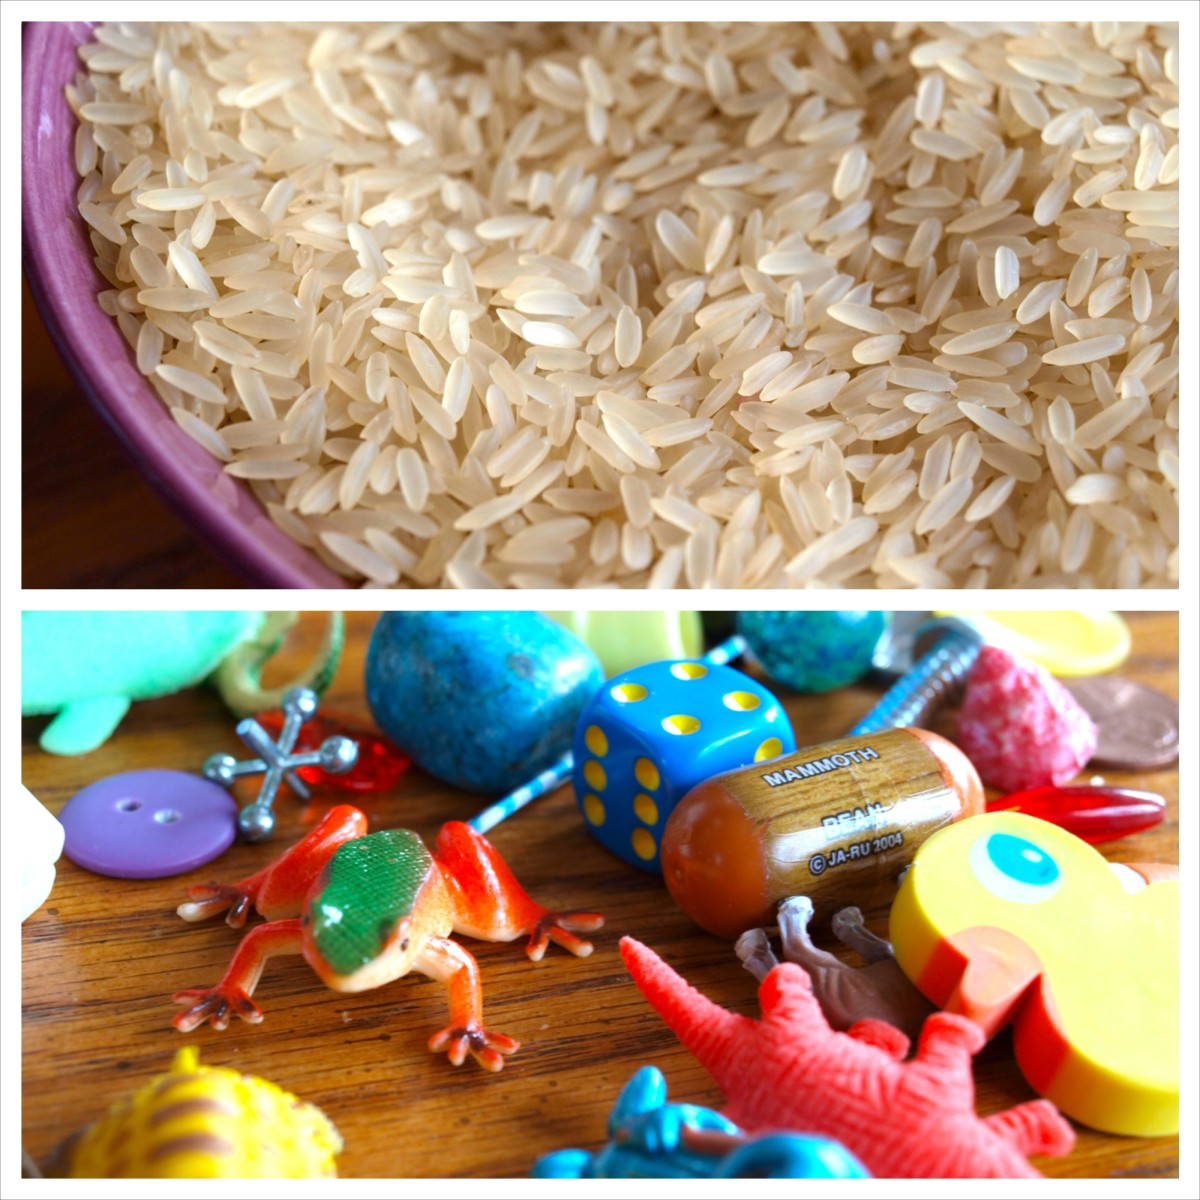 All you'll need for your I Spy bottle are rice and assorted toys/household items.